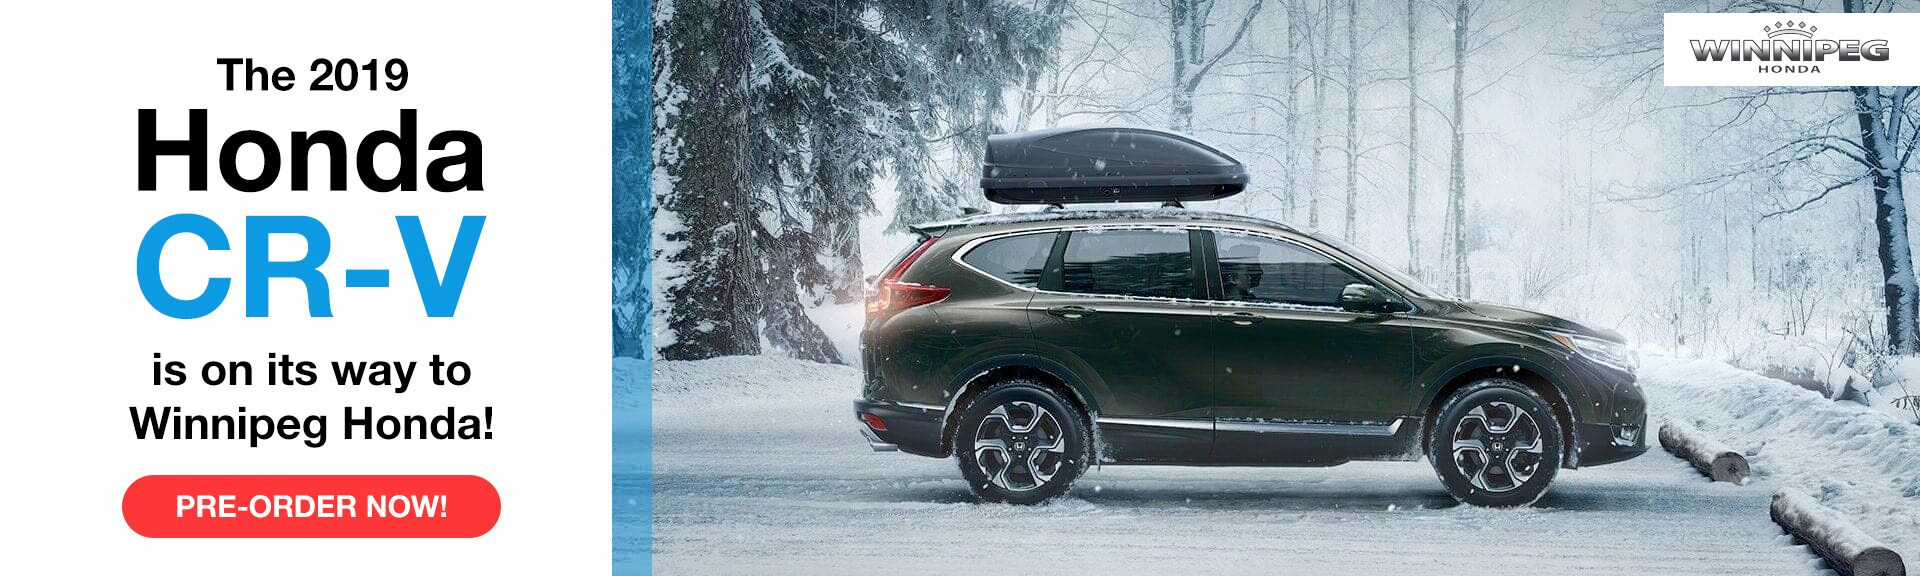 The 2019 Honda CR-V Is Almost Here!